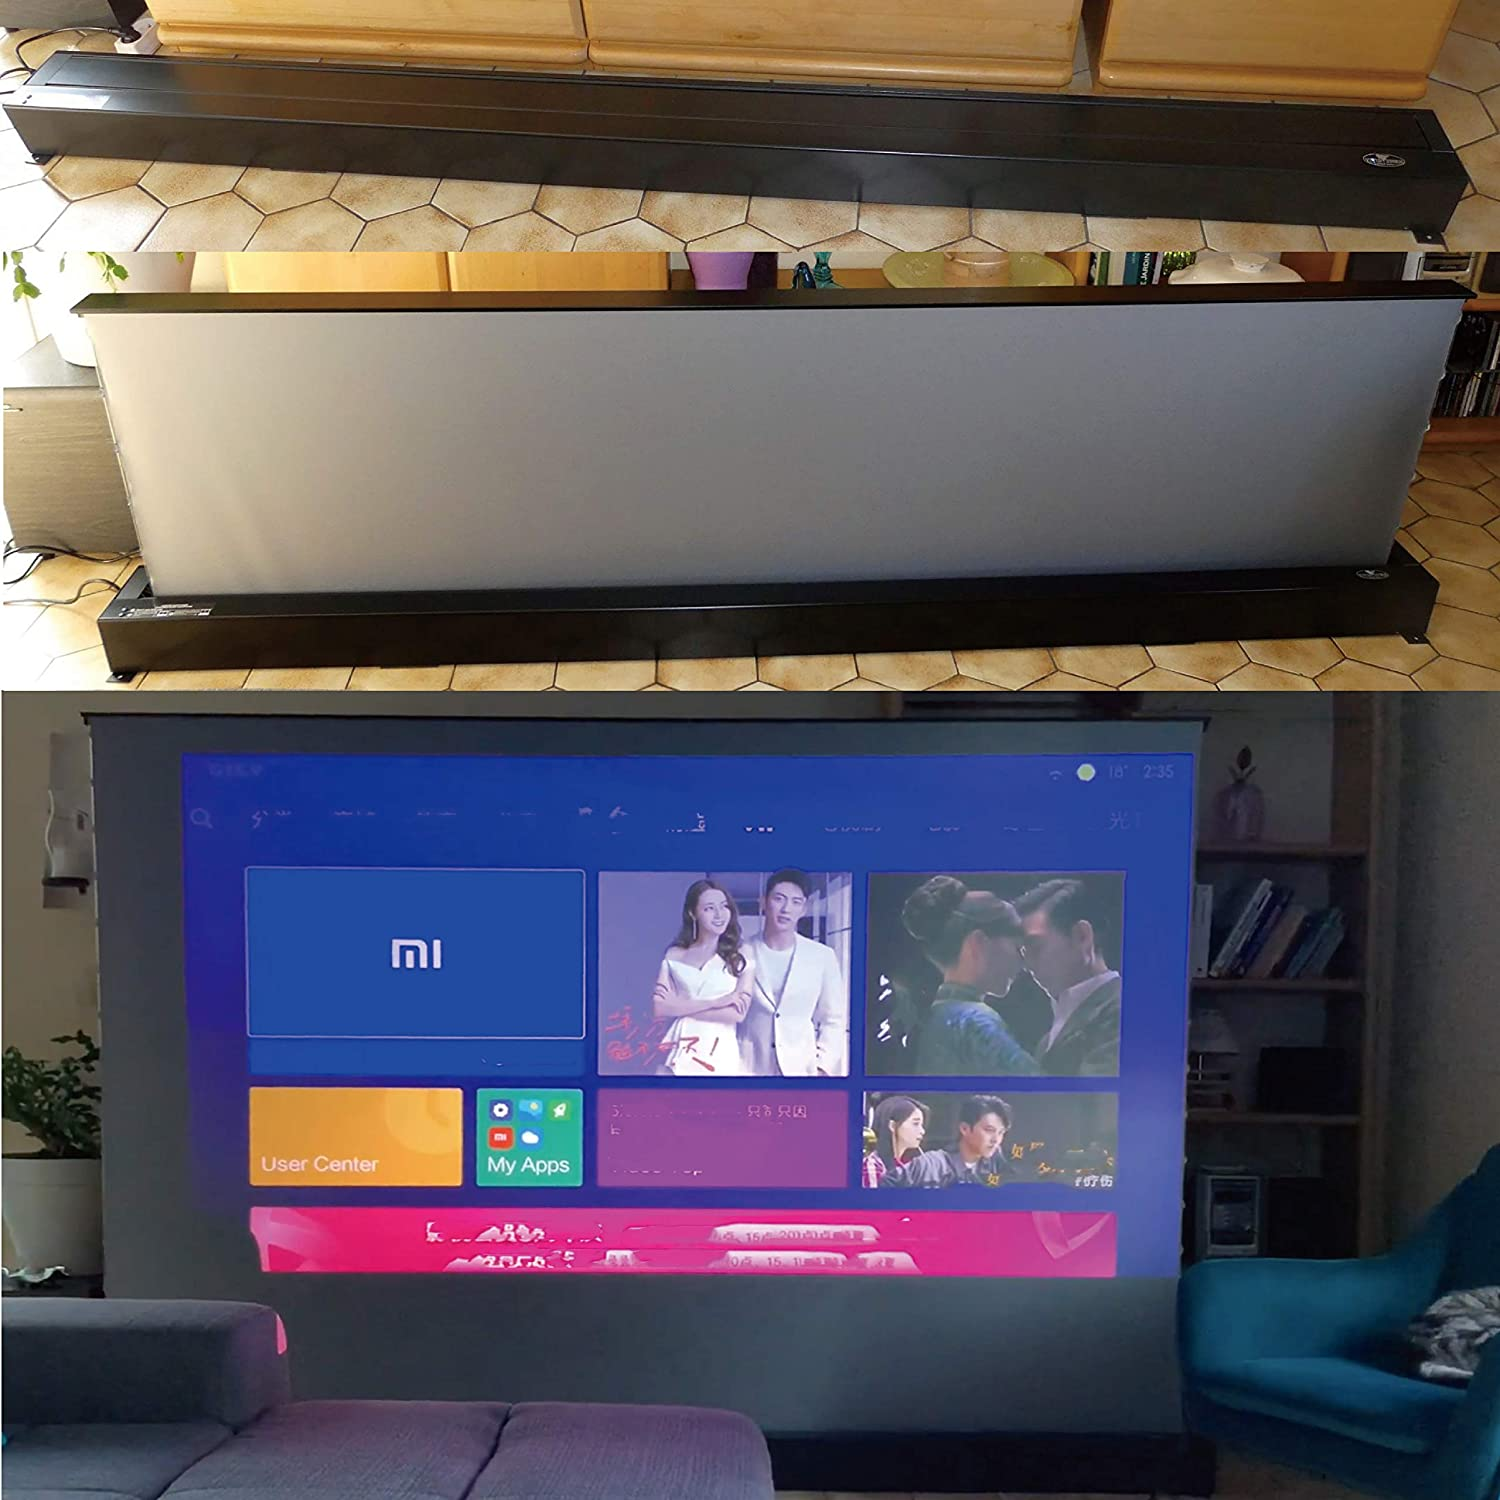 TV Home Theater Projector 8K//3D//UHD Black Housing Motorized Floor Rising Screen 110 inch Ambient Light Rejecting Screen VSDSTUST110H VIVIDSTORM S PRO Ultra Short Throw Laser Projector Screen